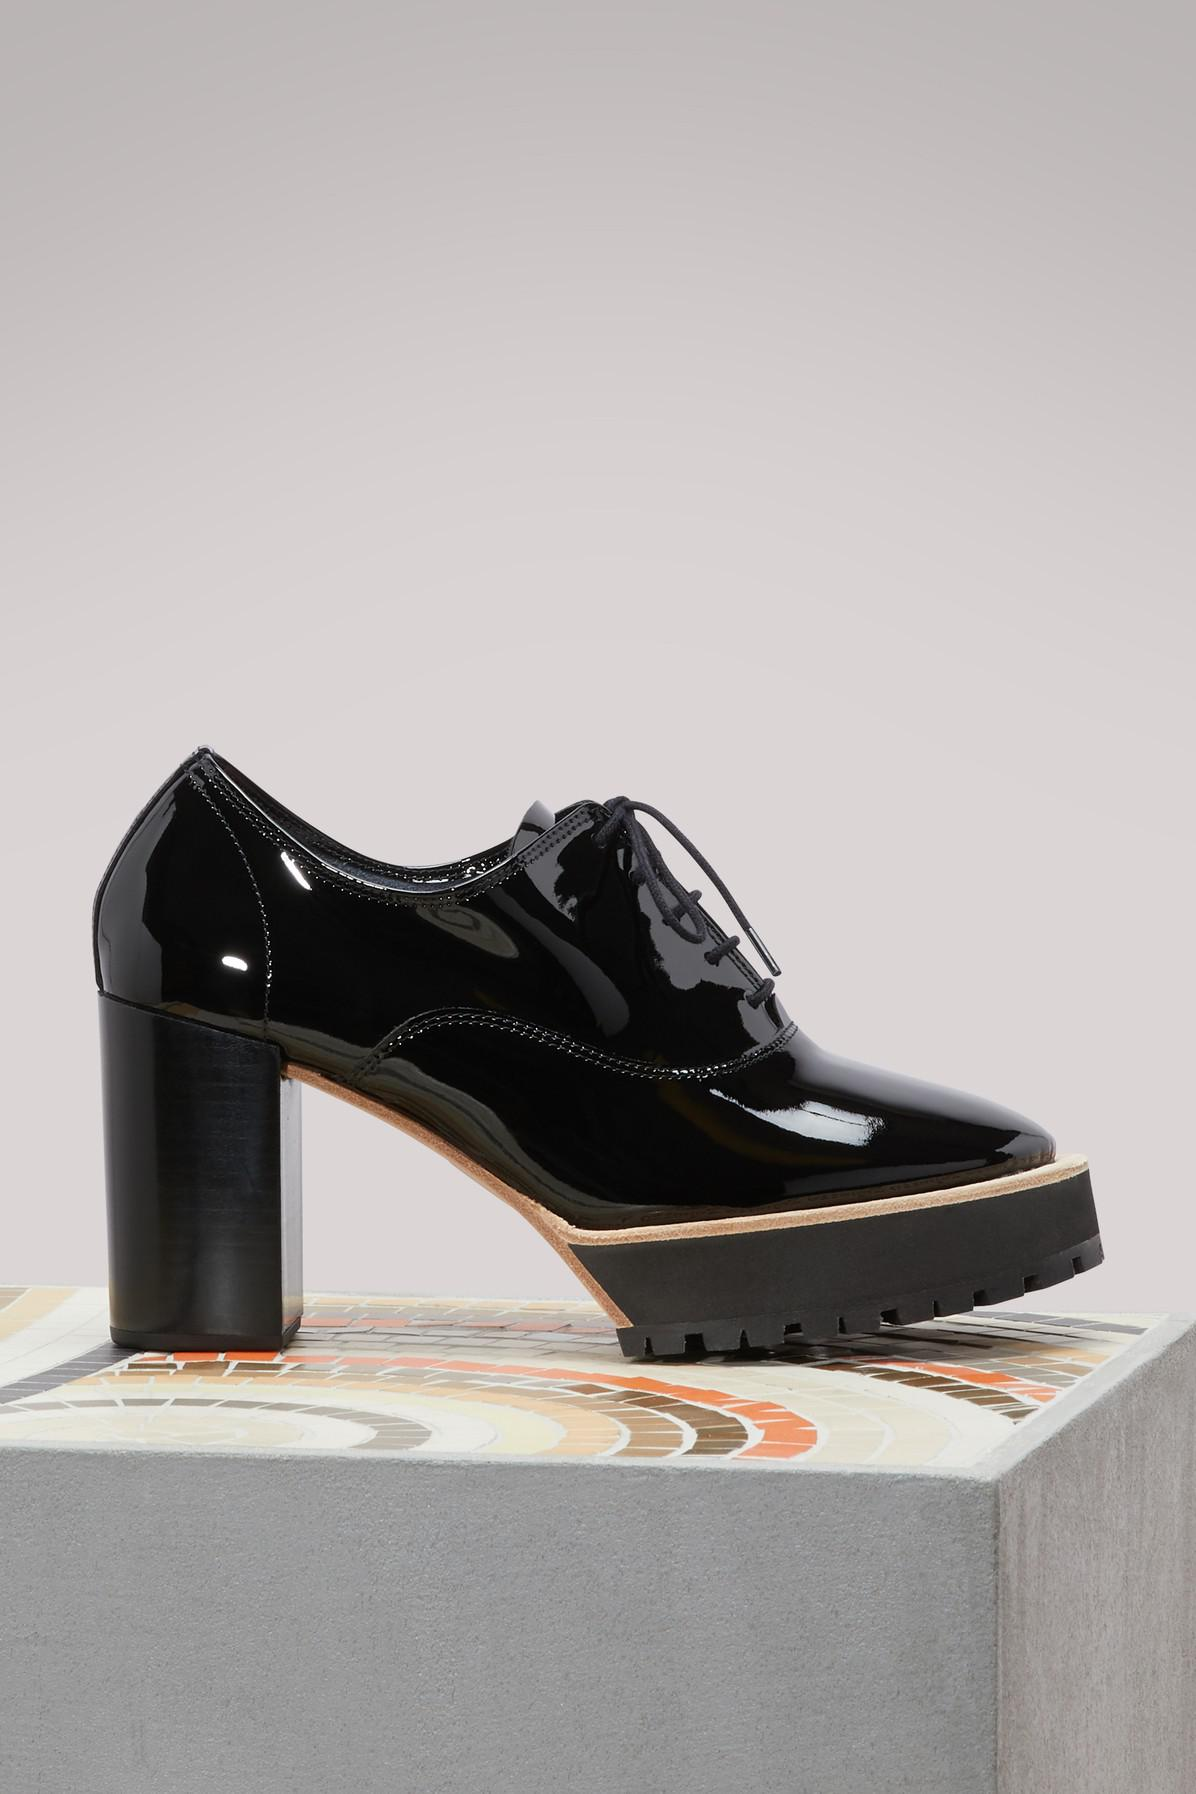 Repetto Ivan heeled Oxfords TfaM0p